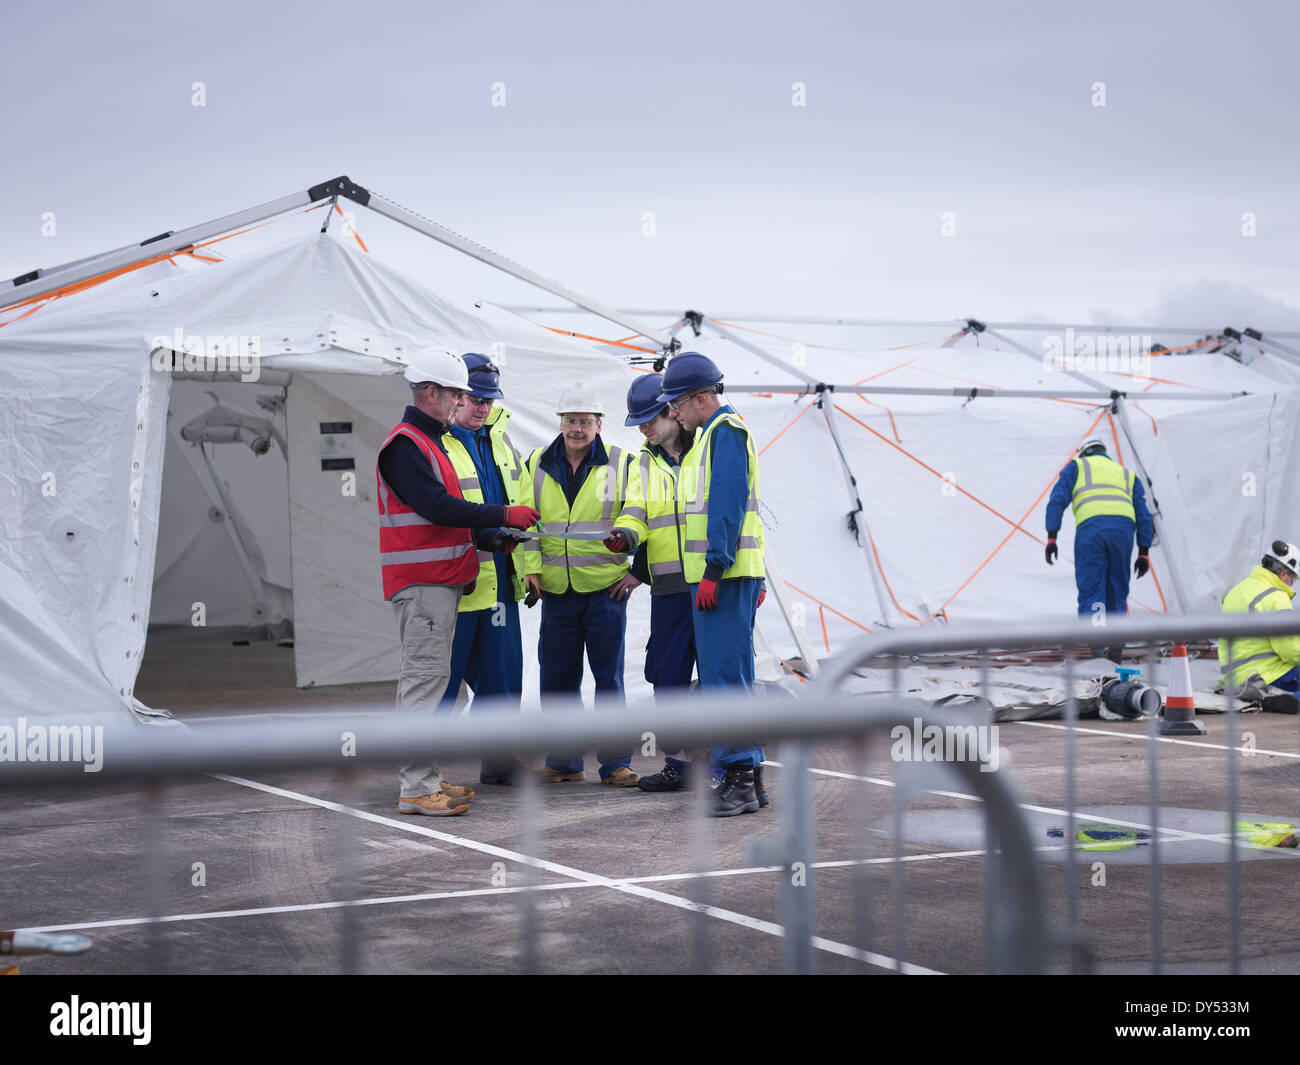 Emergency Response Team workers training in control centre tent - Stock Image